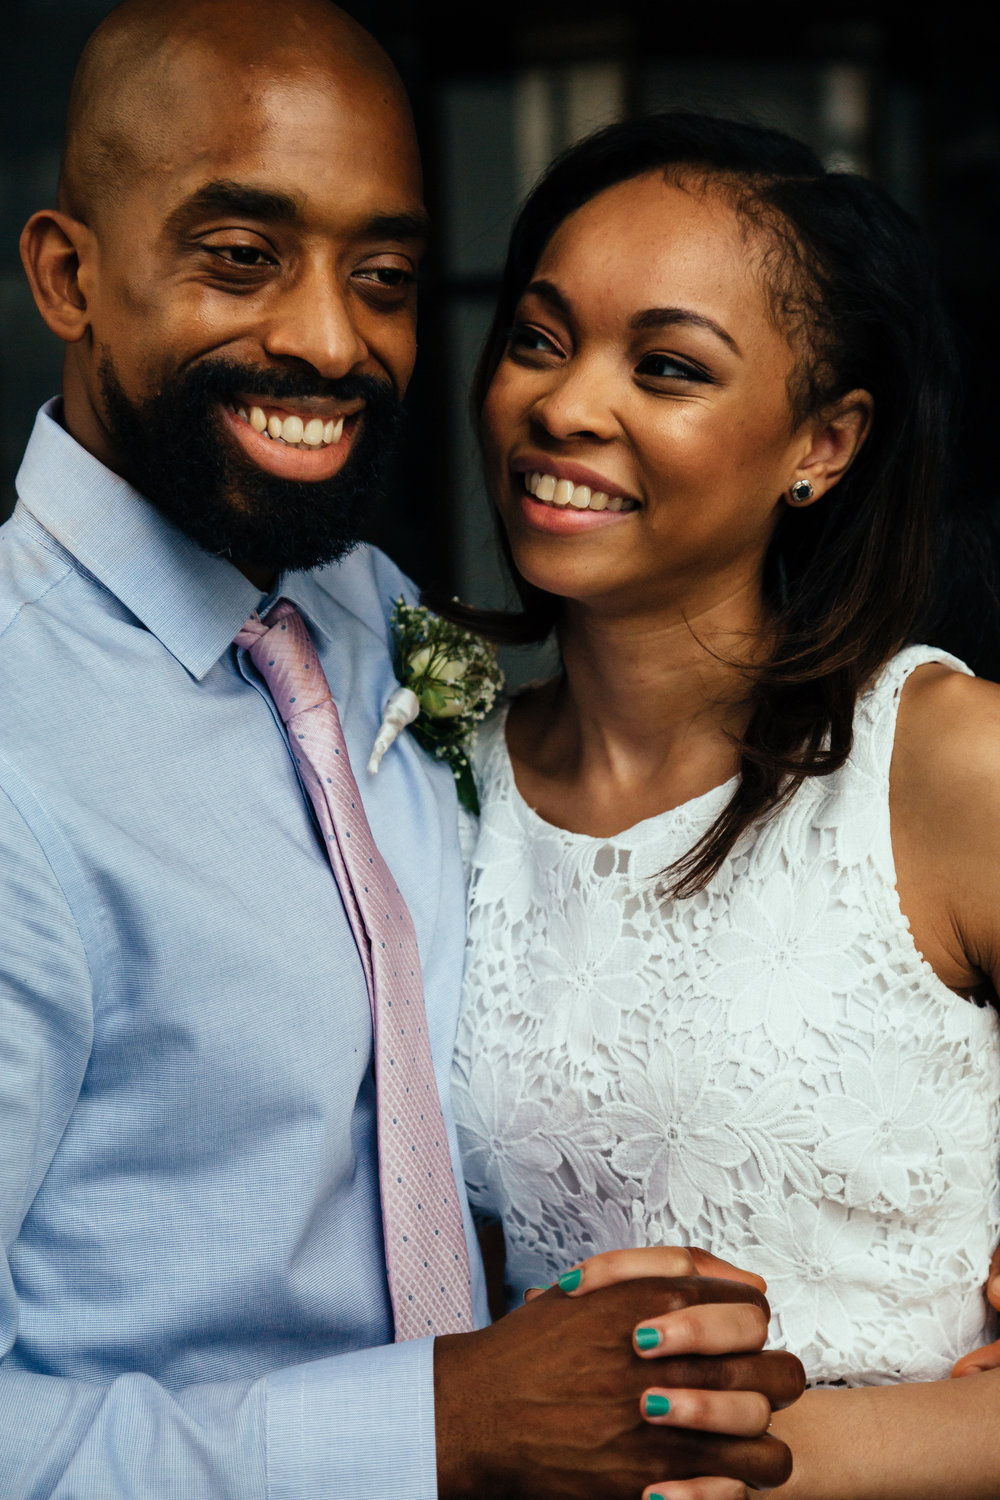 chicago_elopement_tony_brittany-20.jpg